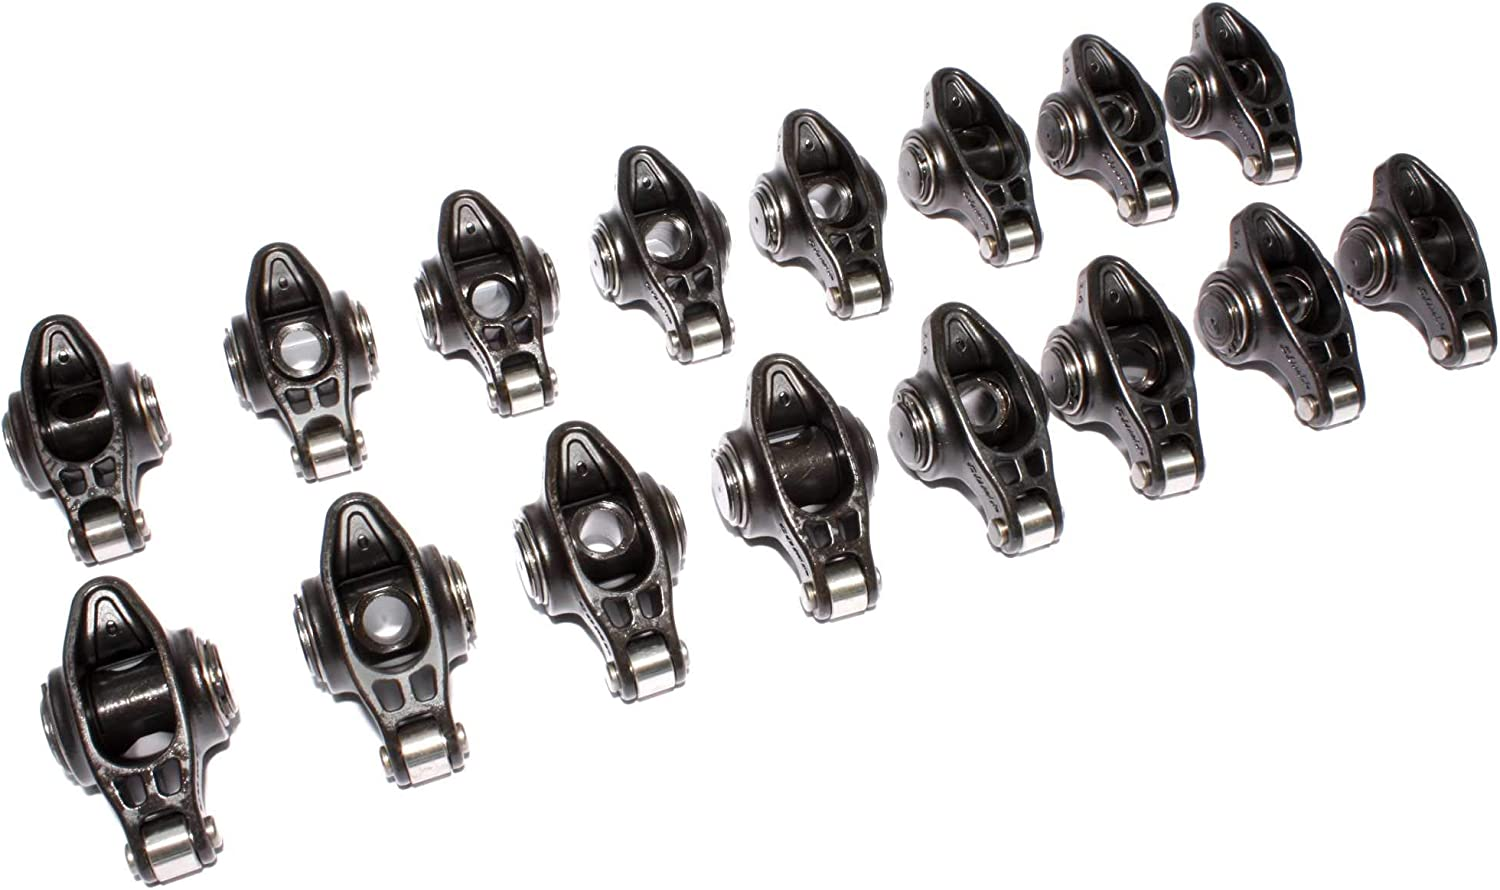 3//8 Stud Diameter Rocker Arm for Small Block Chevrolet Competition Cams 17002-16 High Energy Die Cast Aluminum Roller 1.6 Ratio